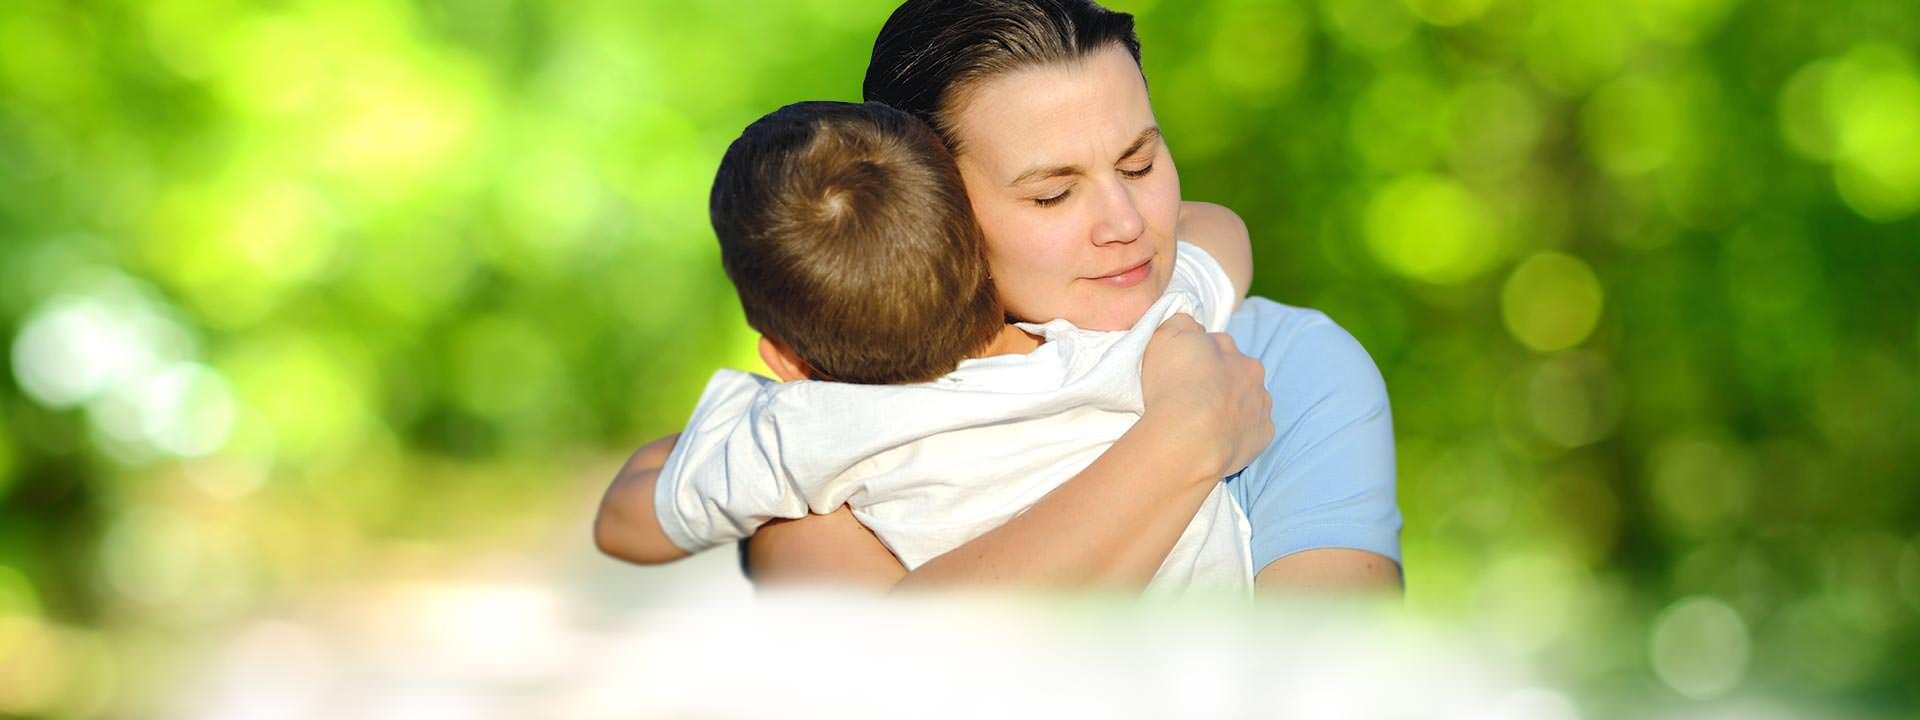 Woman hugging young son blurry green background